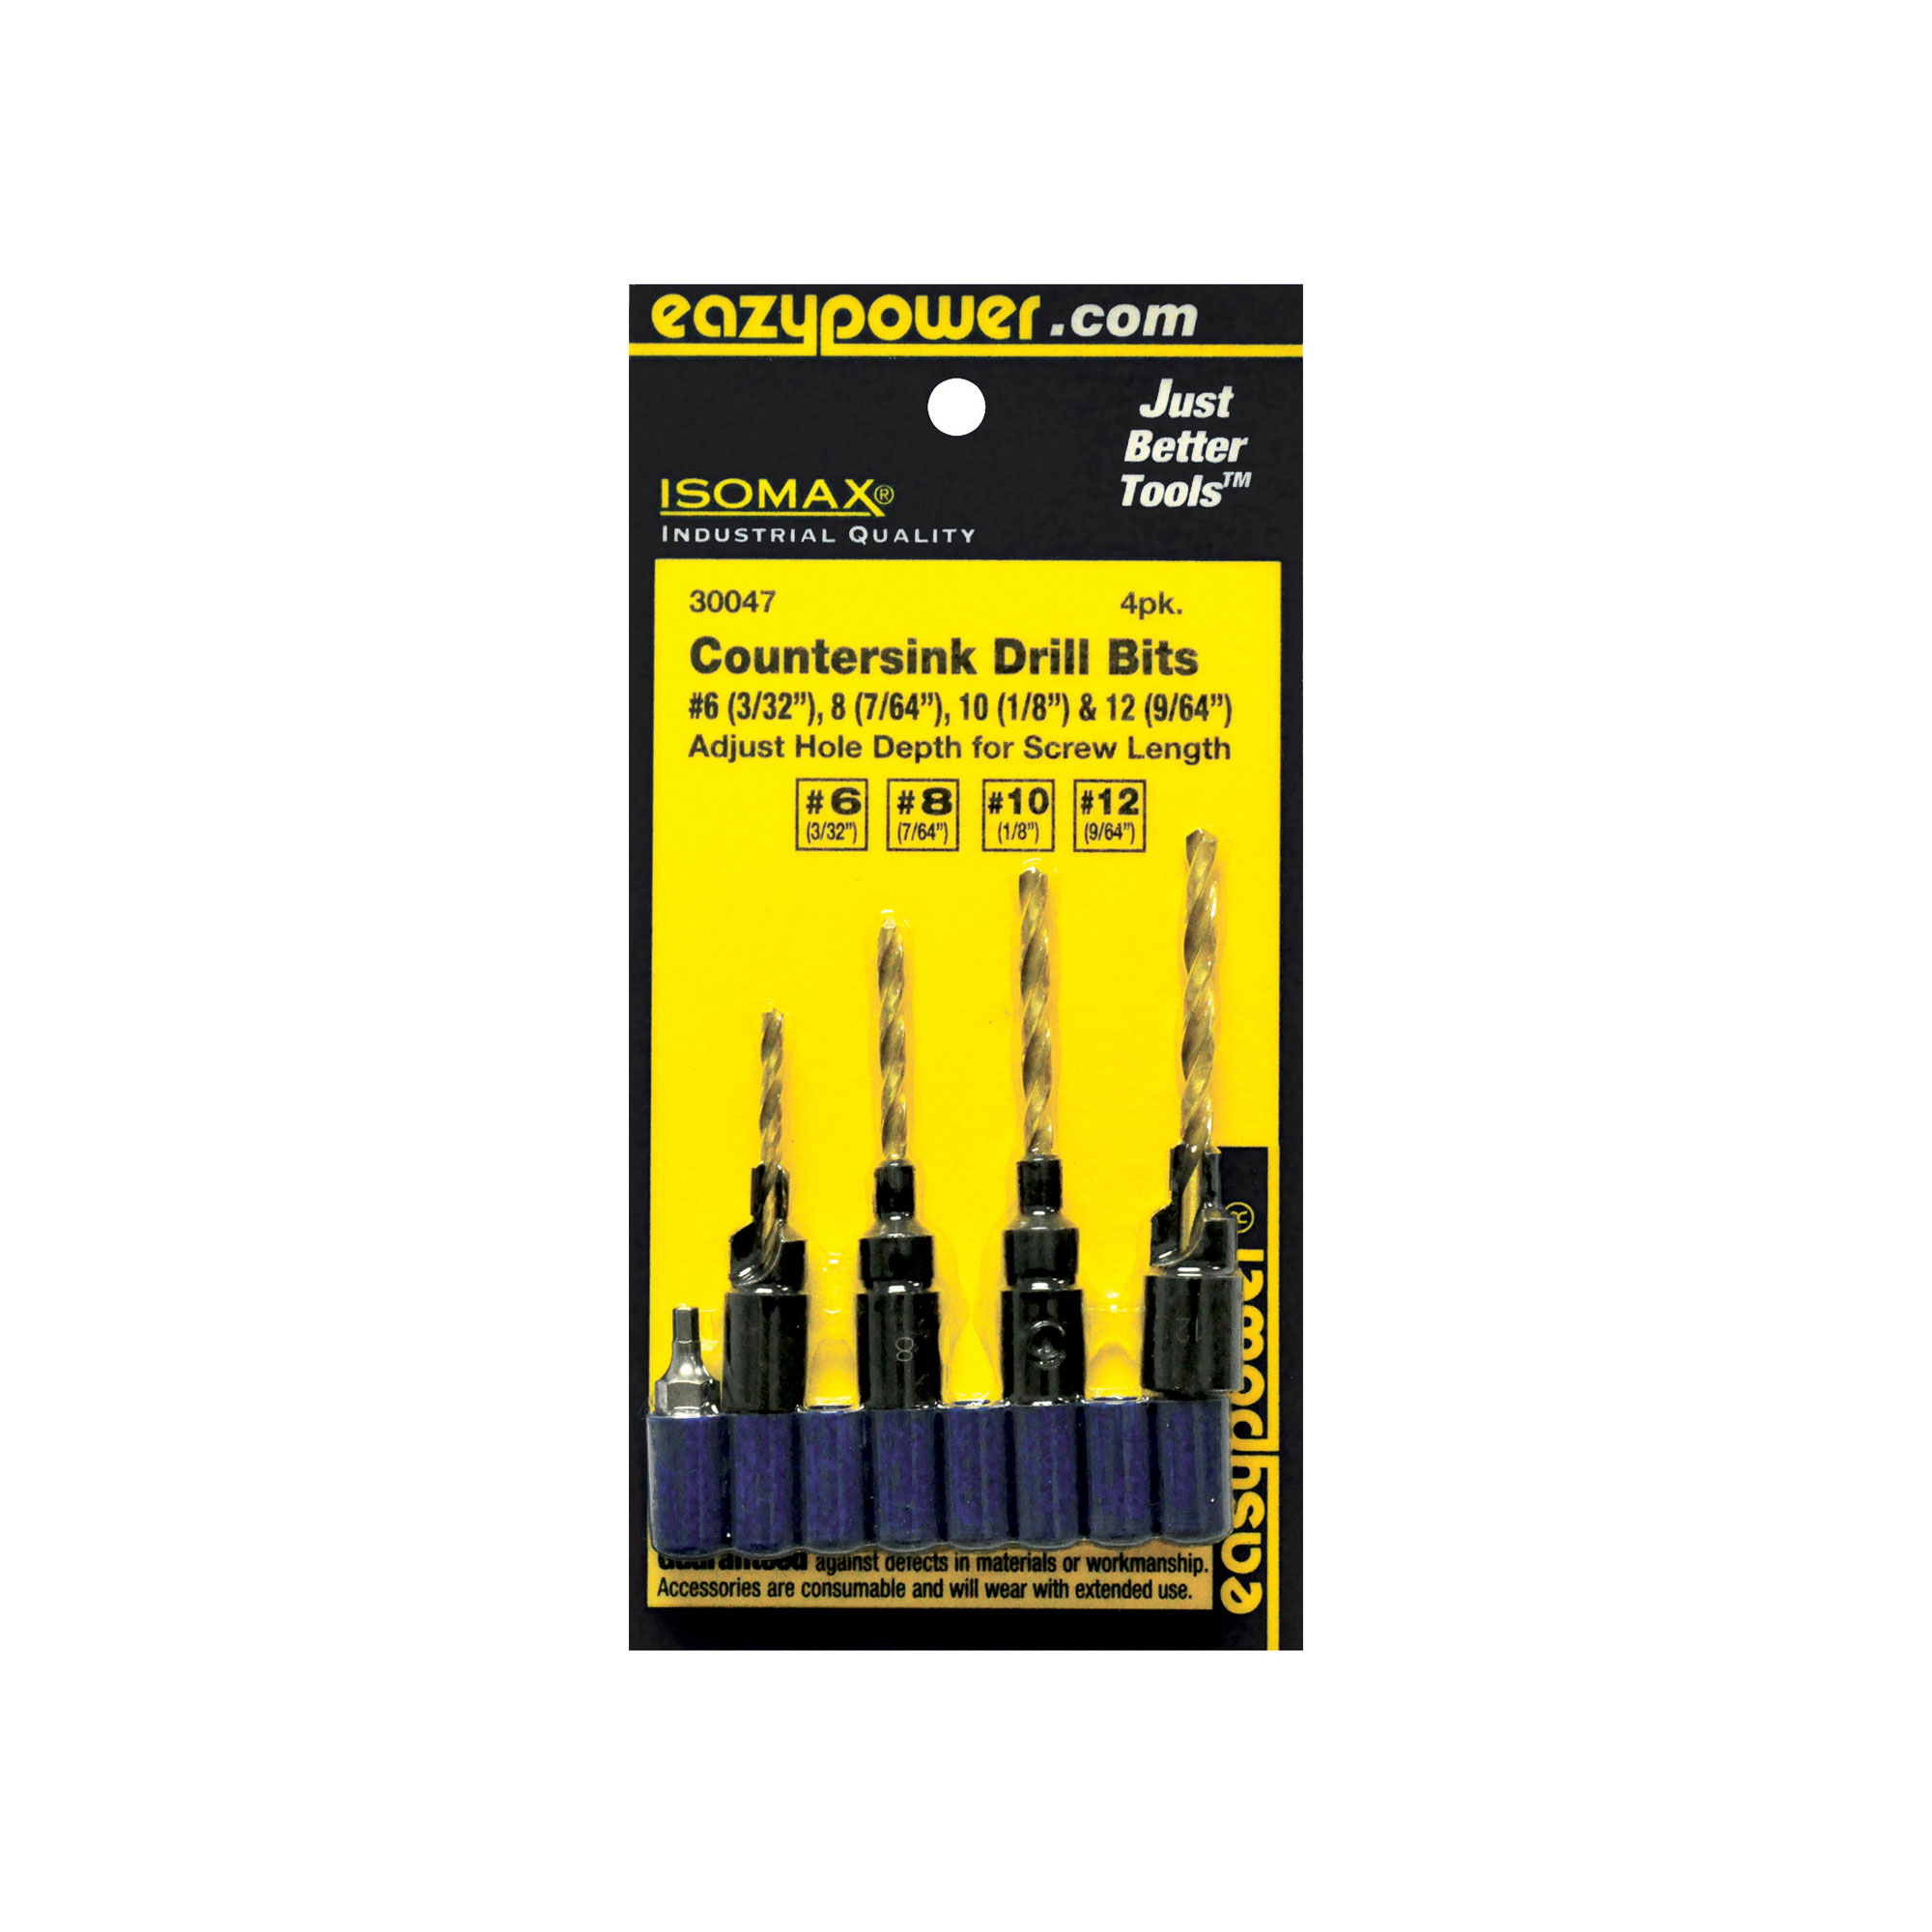 Eazypower Countersink Drill,PK4